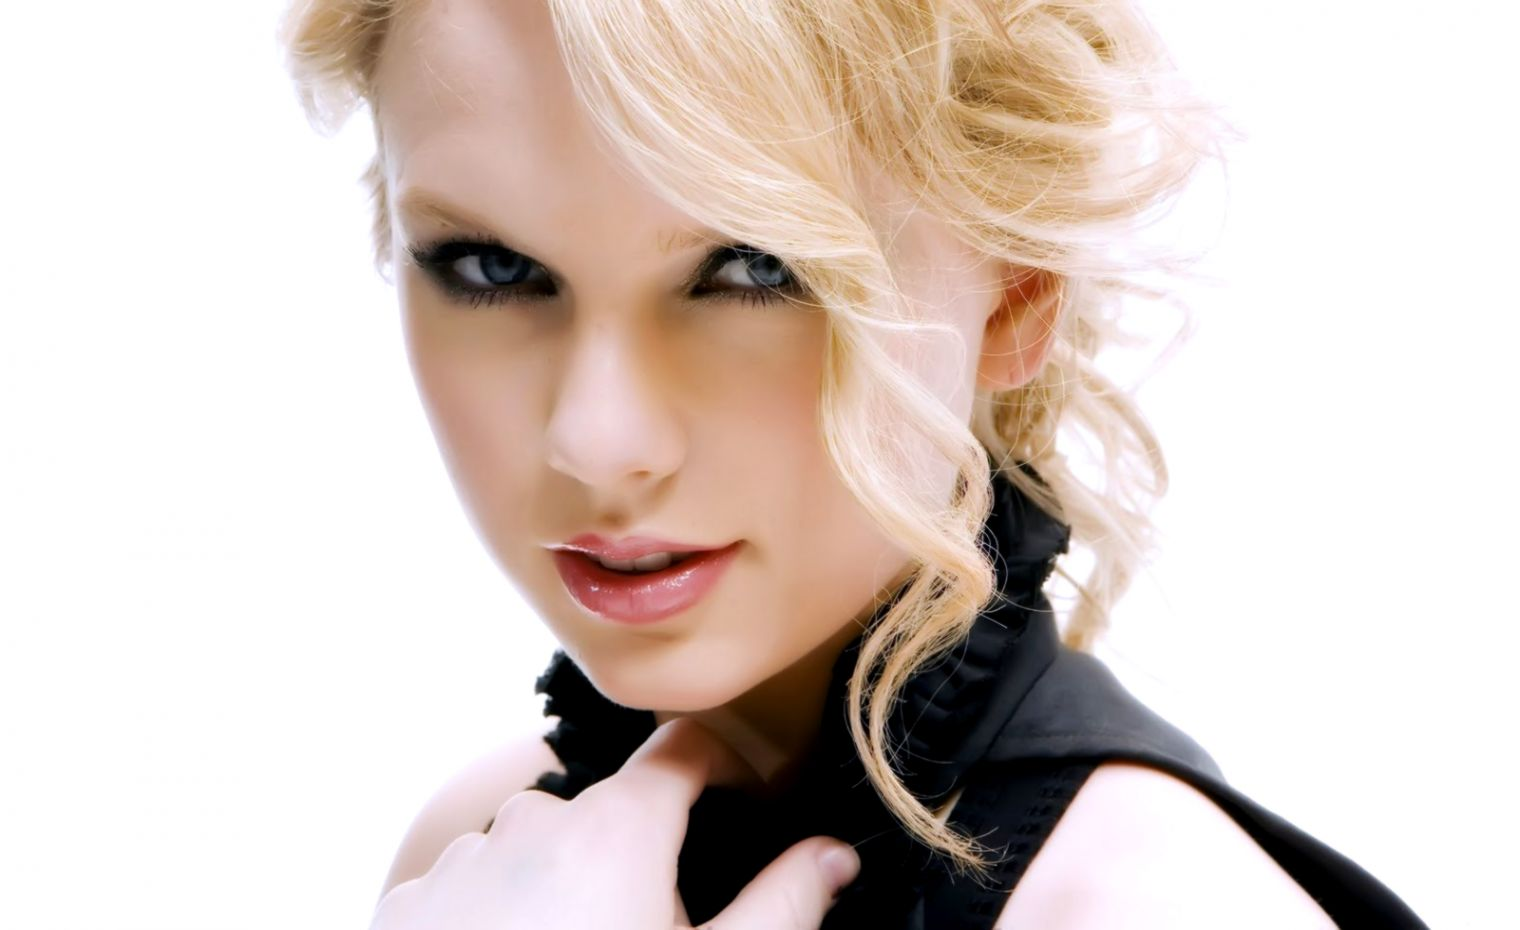 Taylor Swift Cute Smile Wallpapers Background